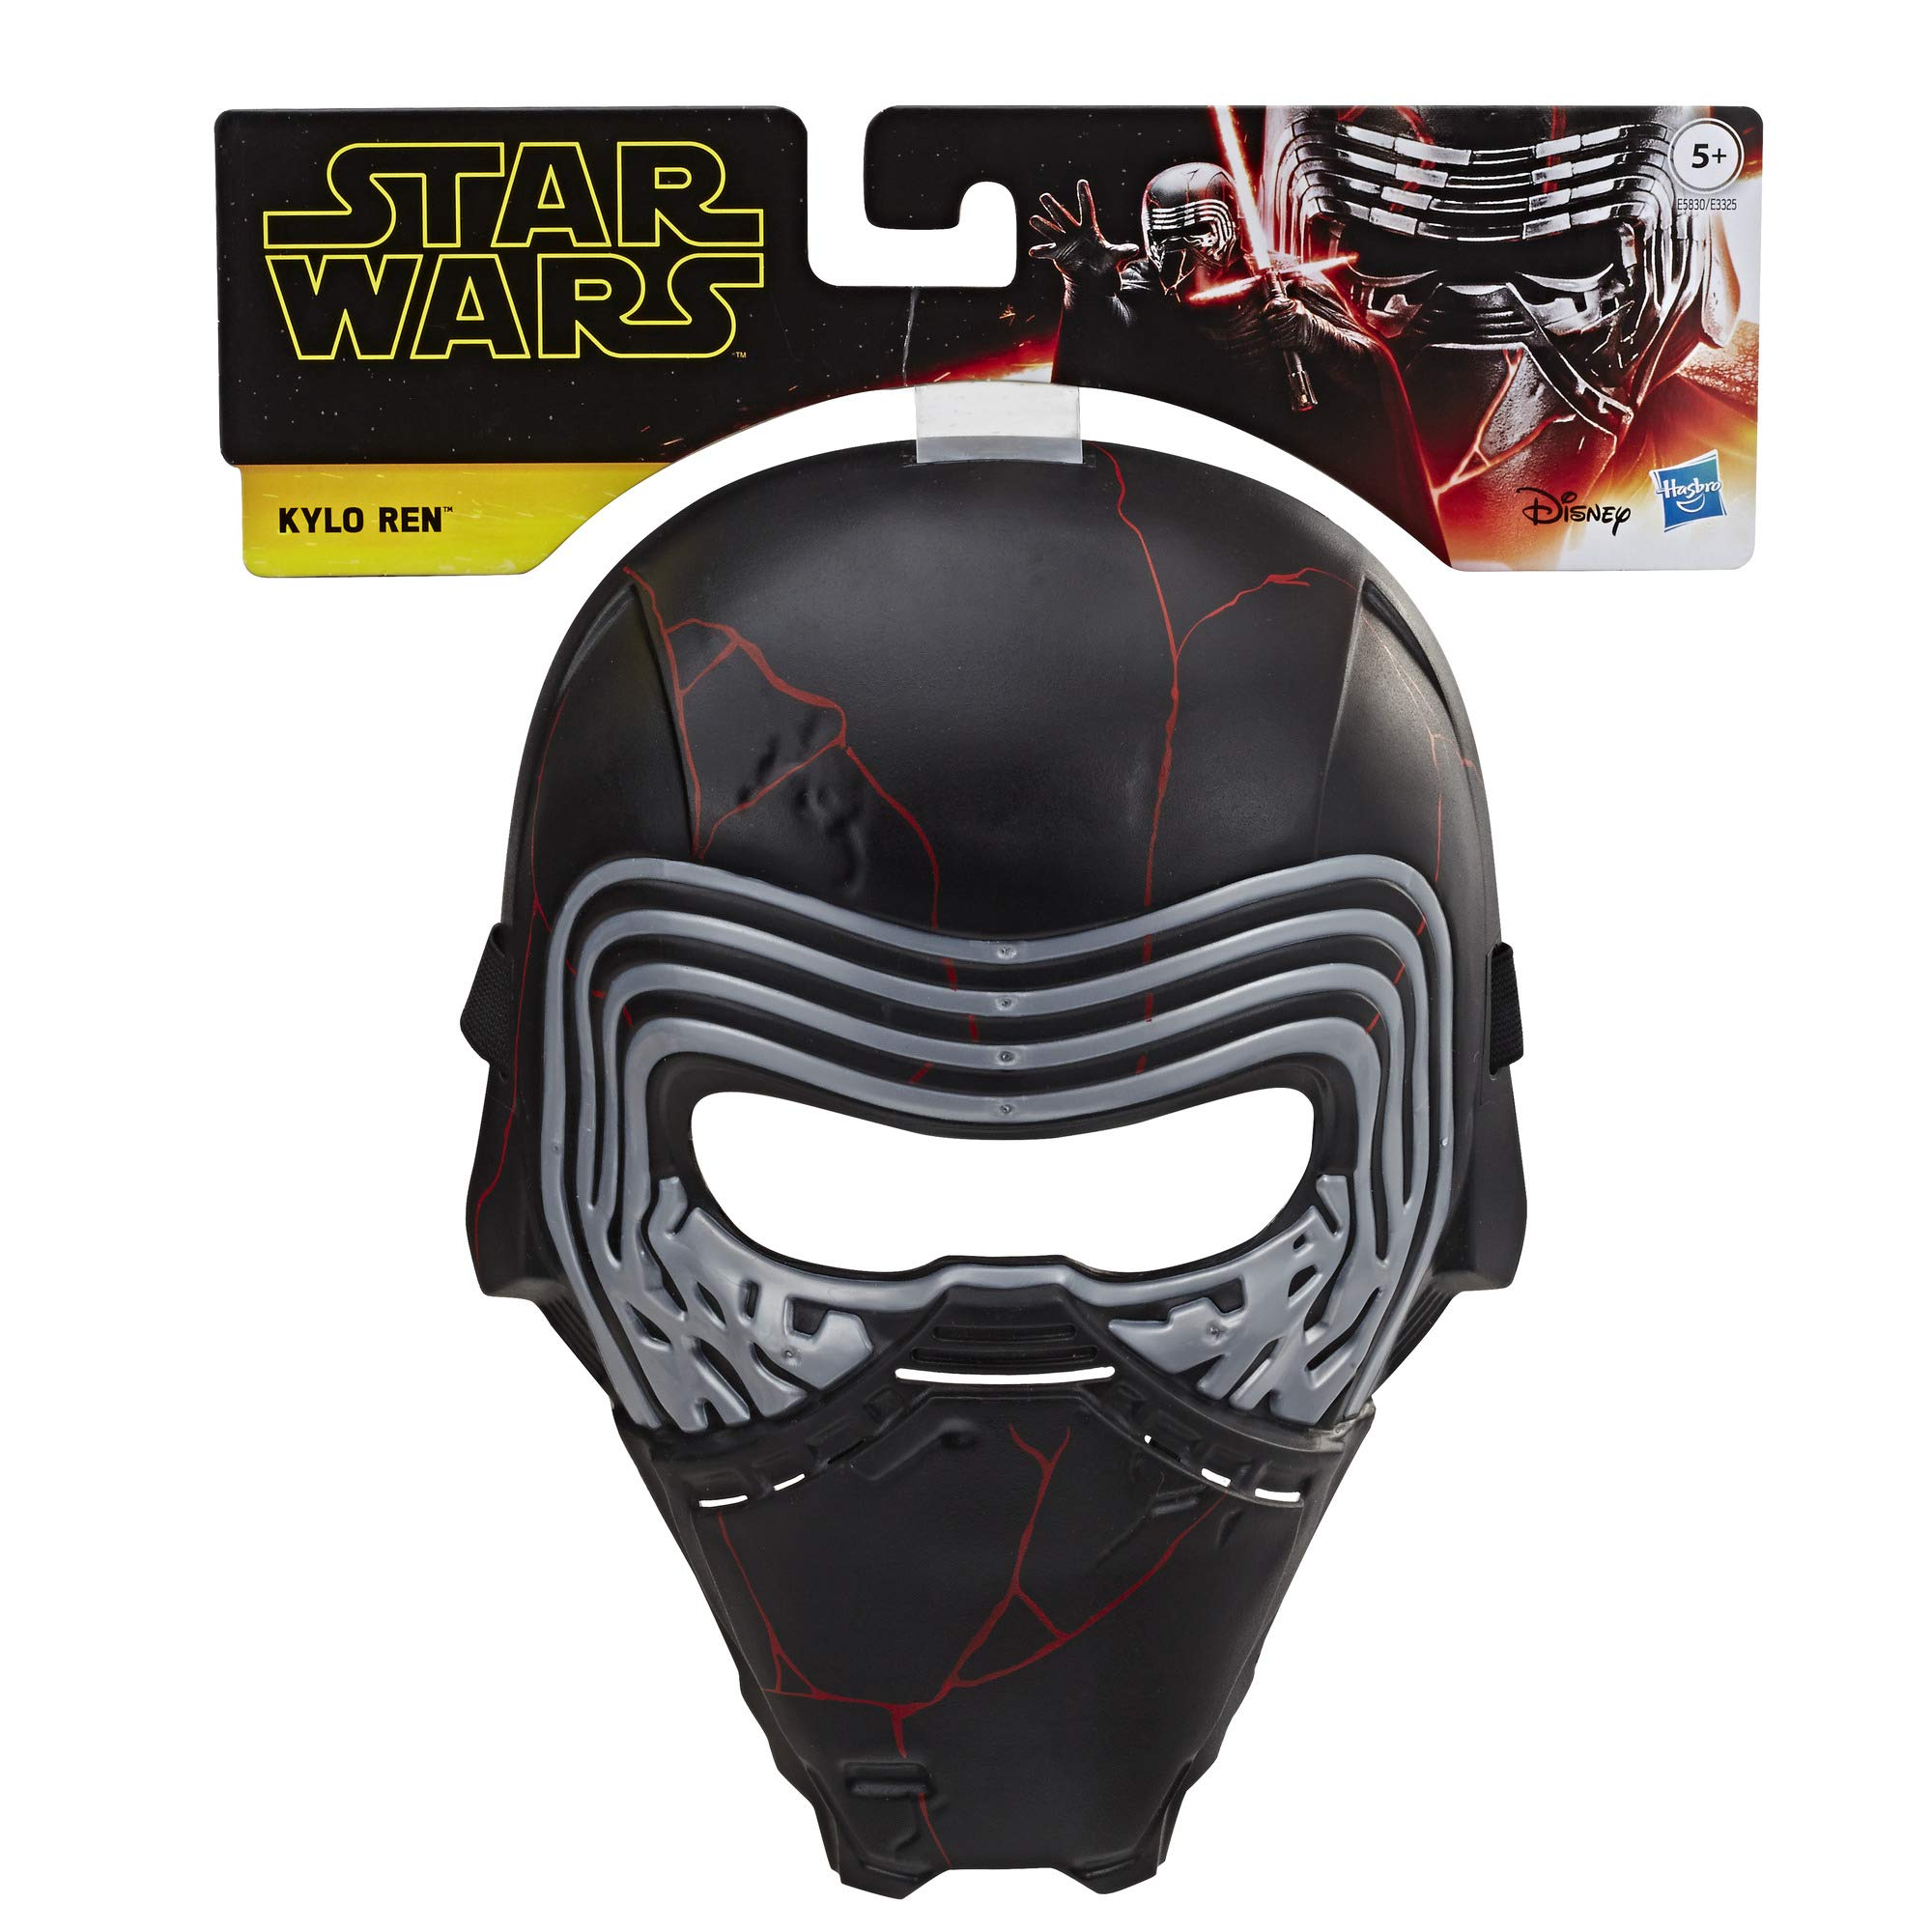 STAR WARS Leia Han Solo Luke Skywalker Rubies Card Mask Masque en carton